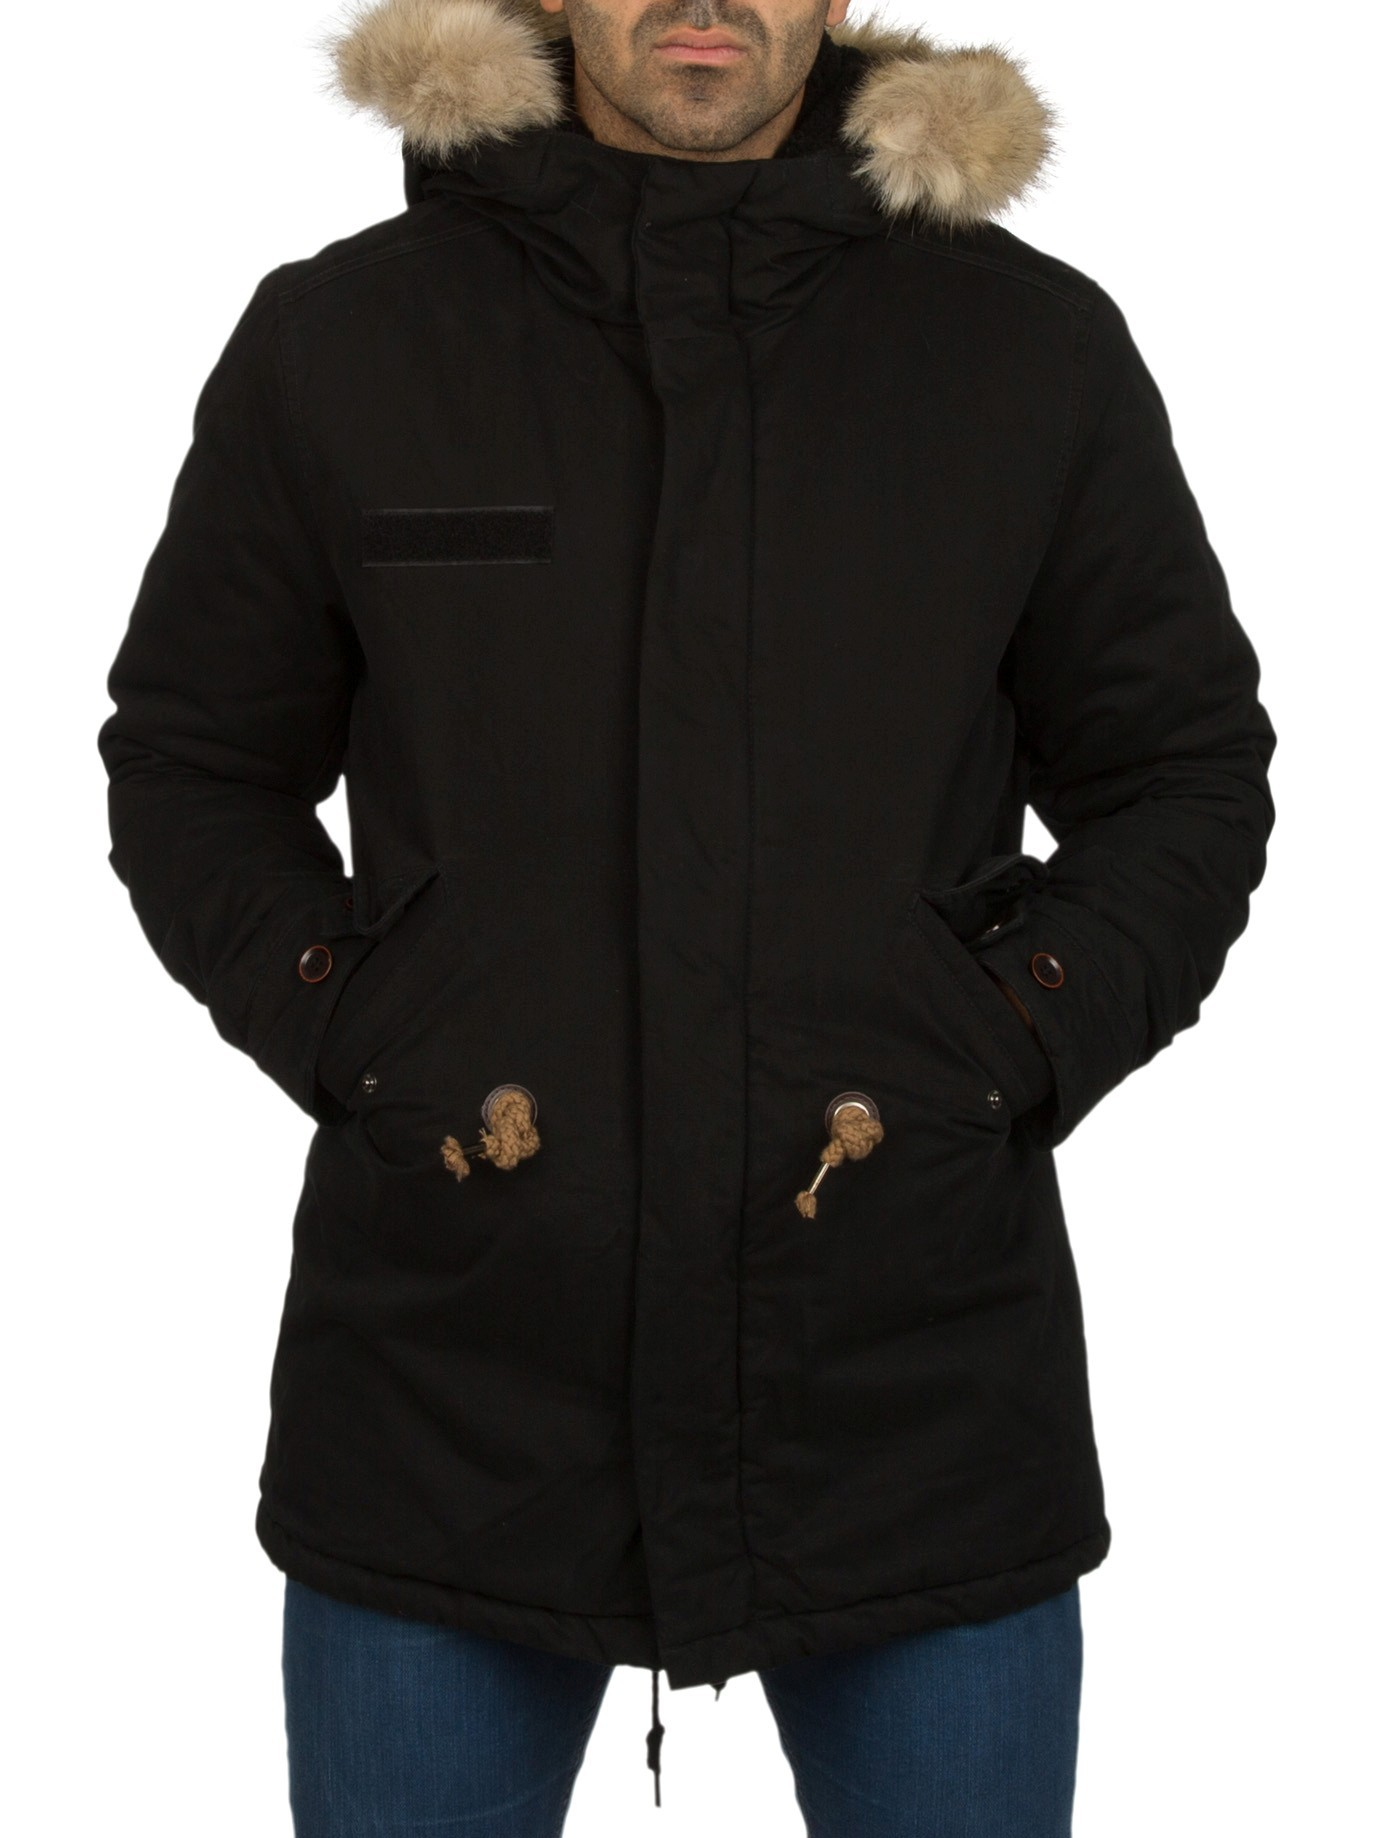 manteau parka homme hiver. Black Bedroom Furniture Sets. Home Design Ideas